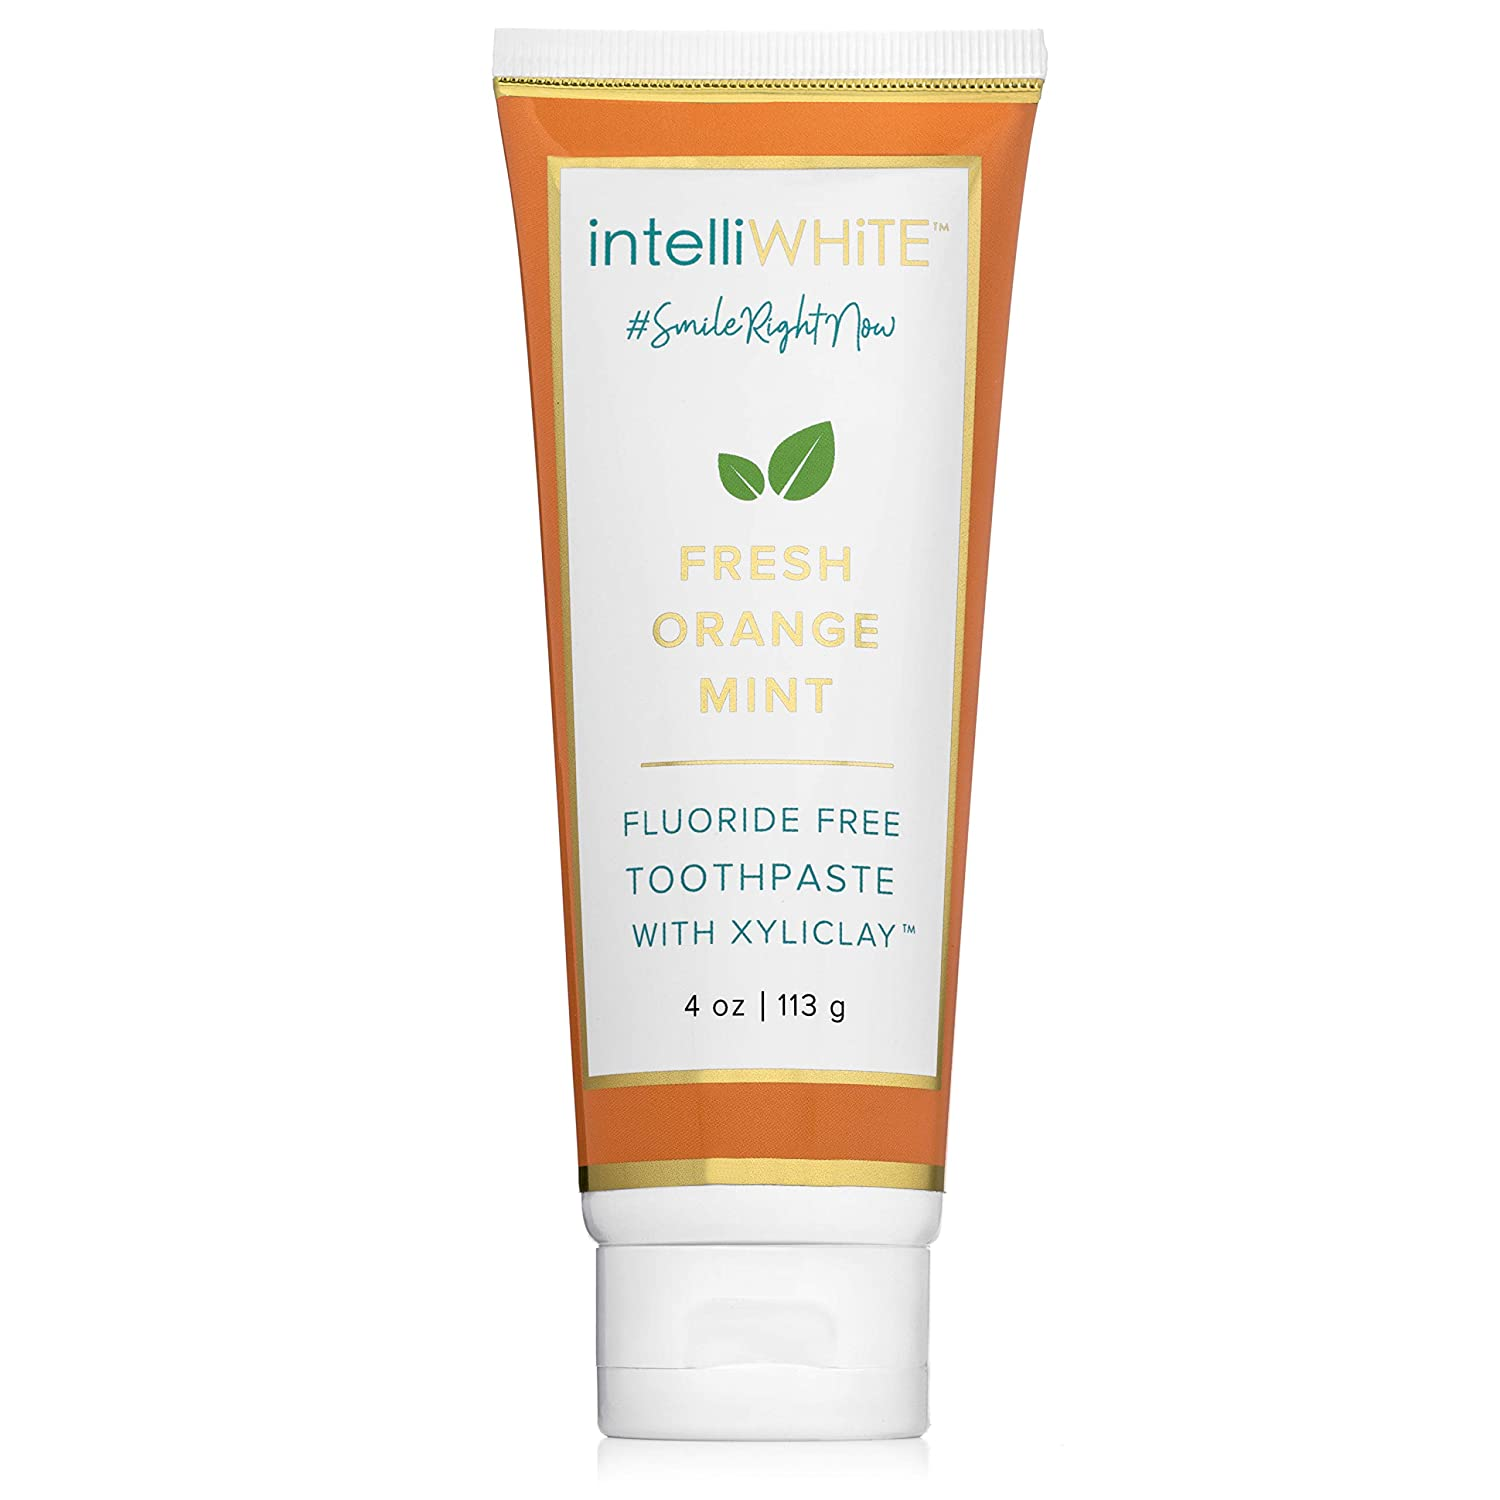 intelliWHiTE Naturally Crafted Fresh T Orange-Mint New Shipping Limited time sale Free Fluoride-Free